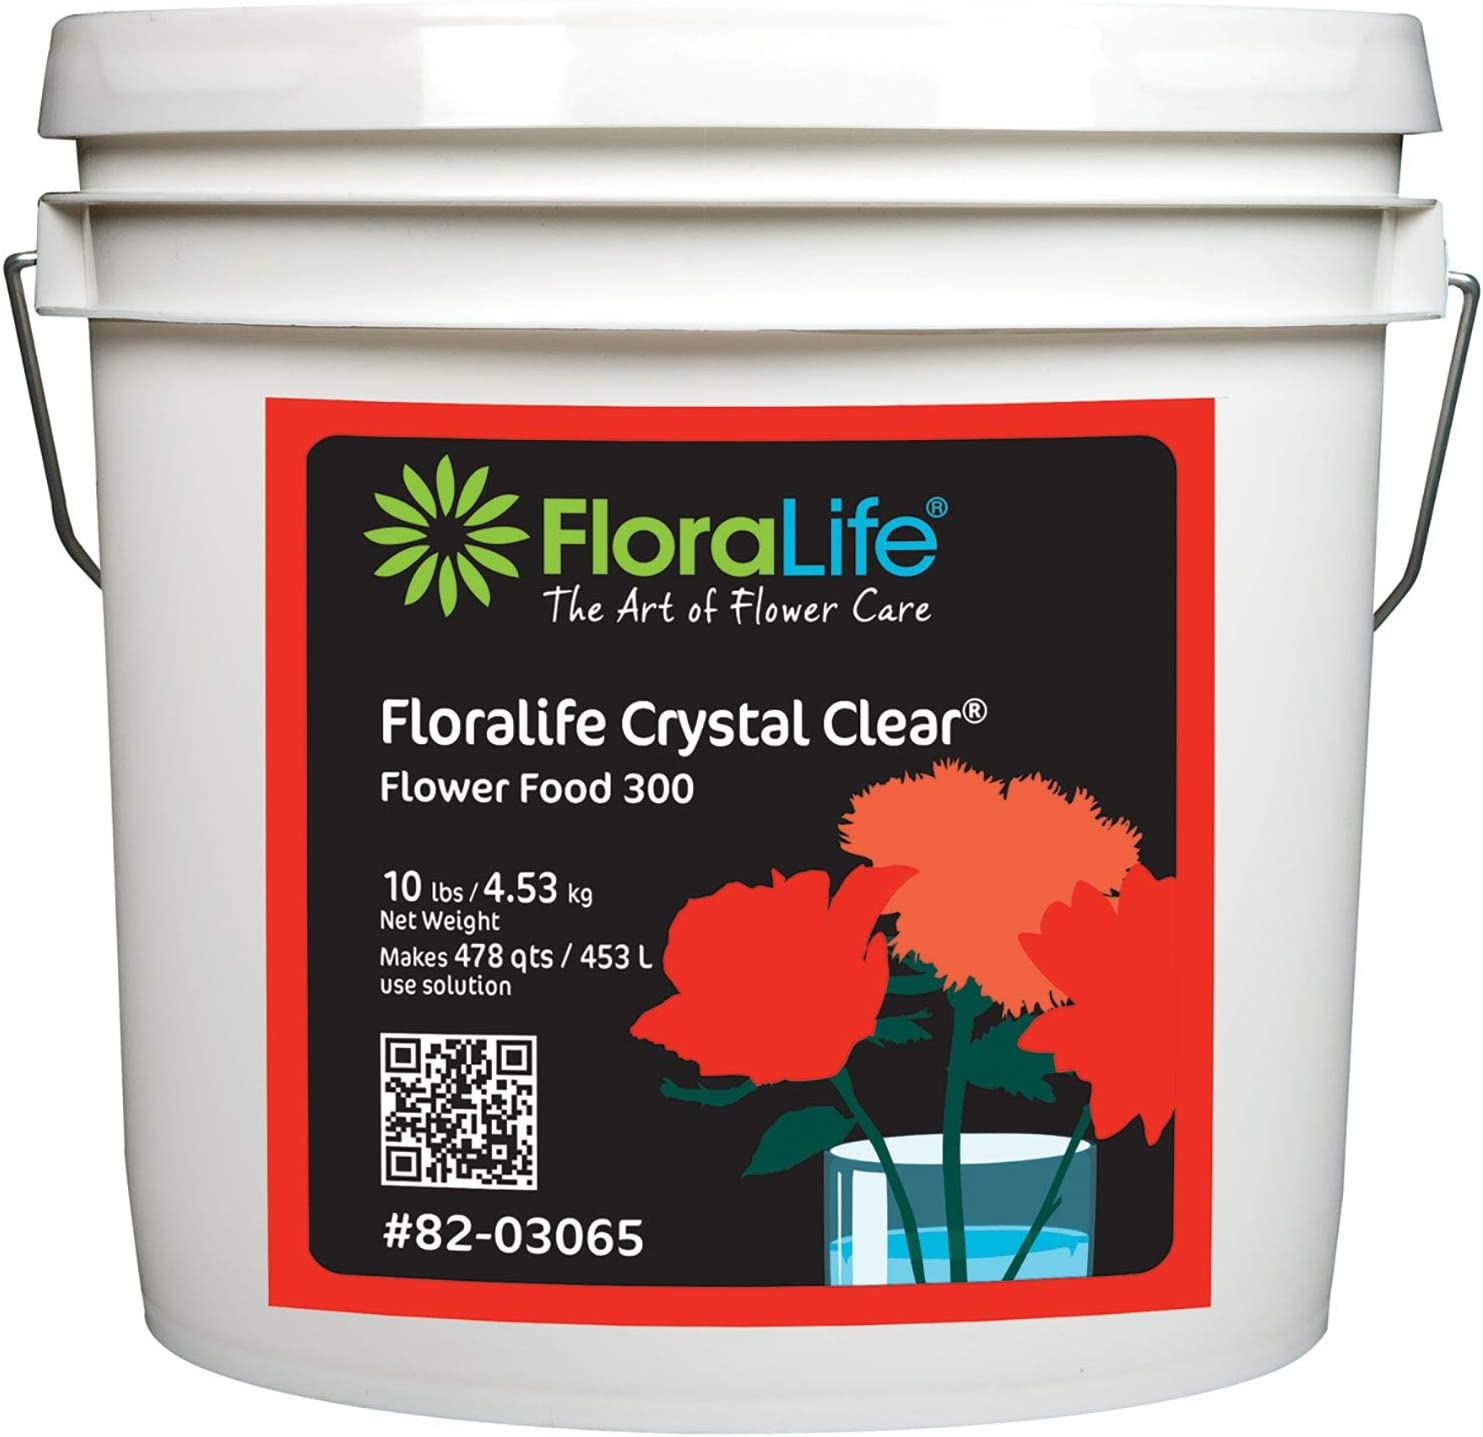 Floralife Crystal Clear Flower Food 300 Powder, 10 Lb.